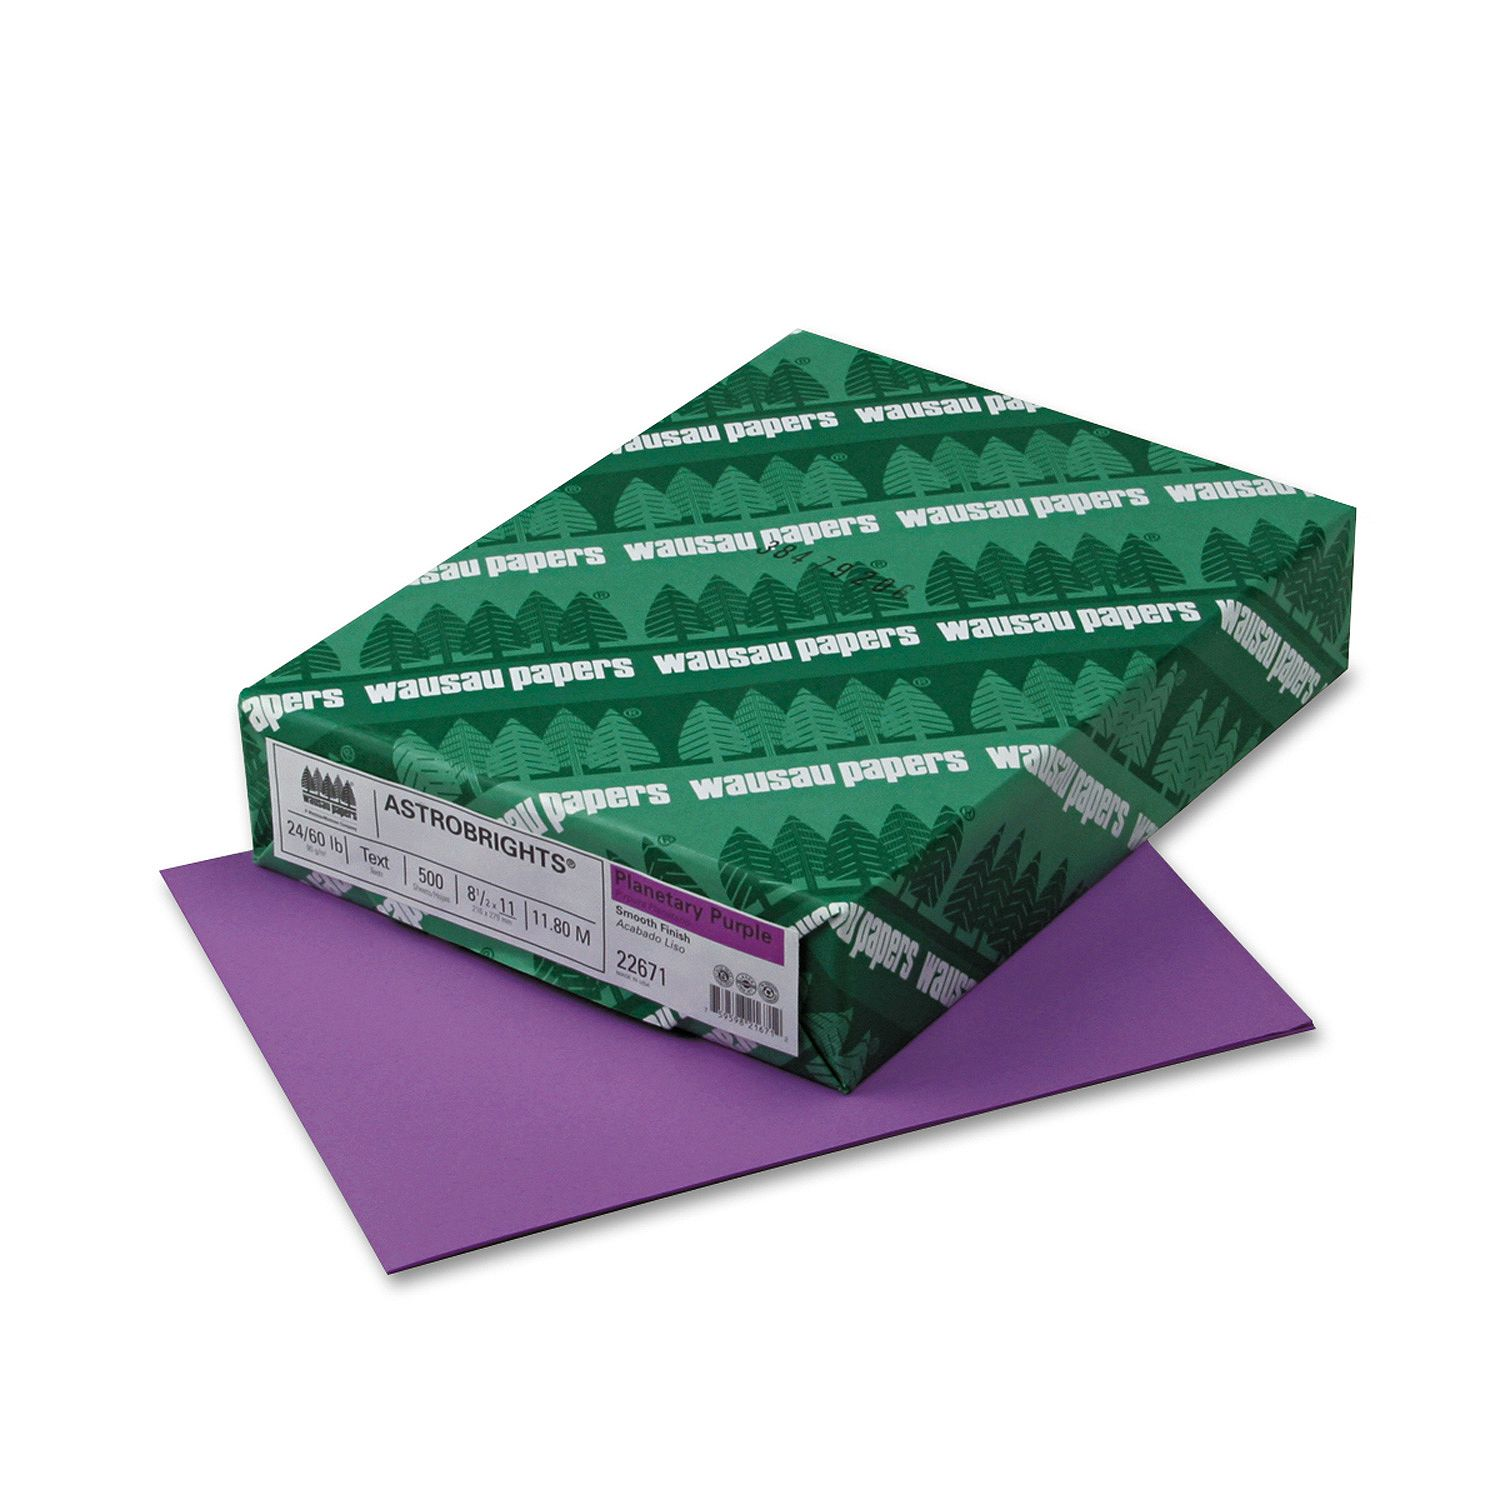 Wausau Paper - Astrobrights Colored Paper, 8-1/2 x 11, Planetary Purple - 500 Sheets/Ream